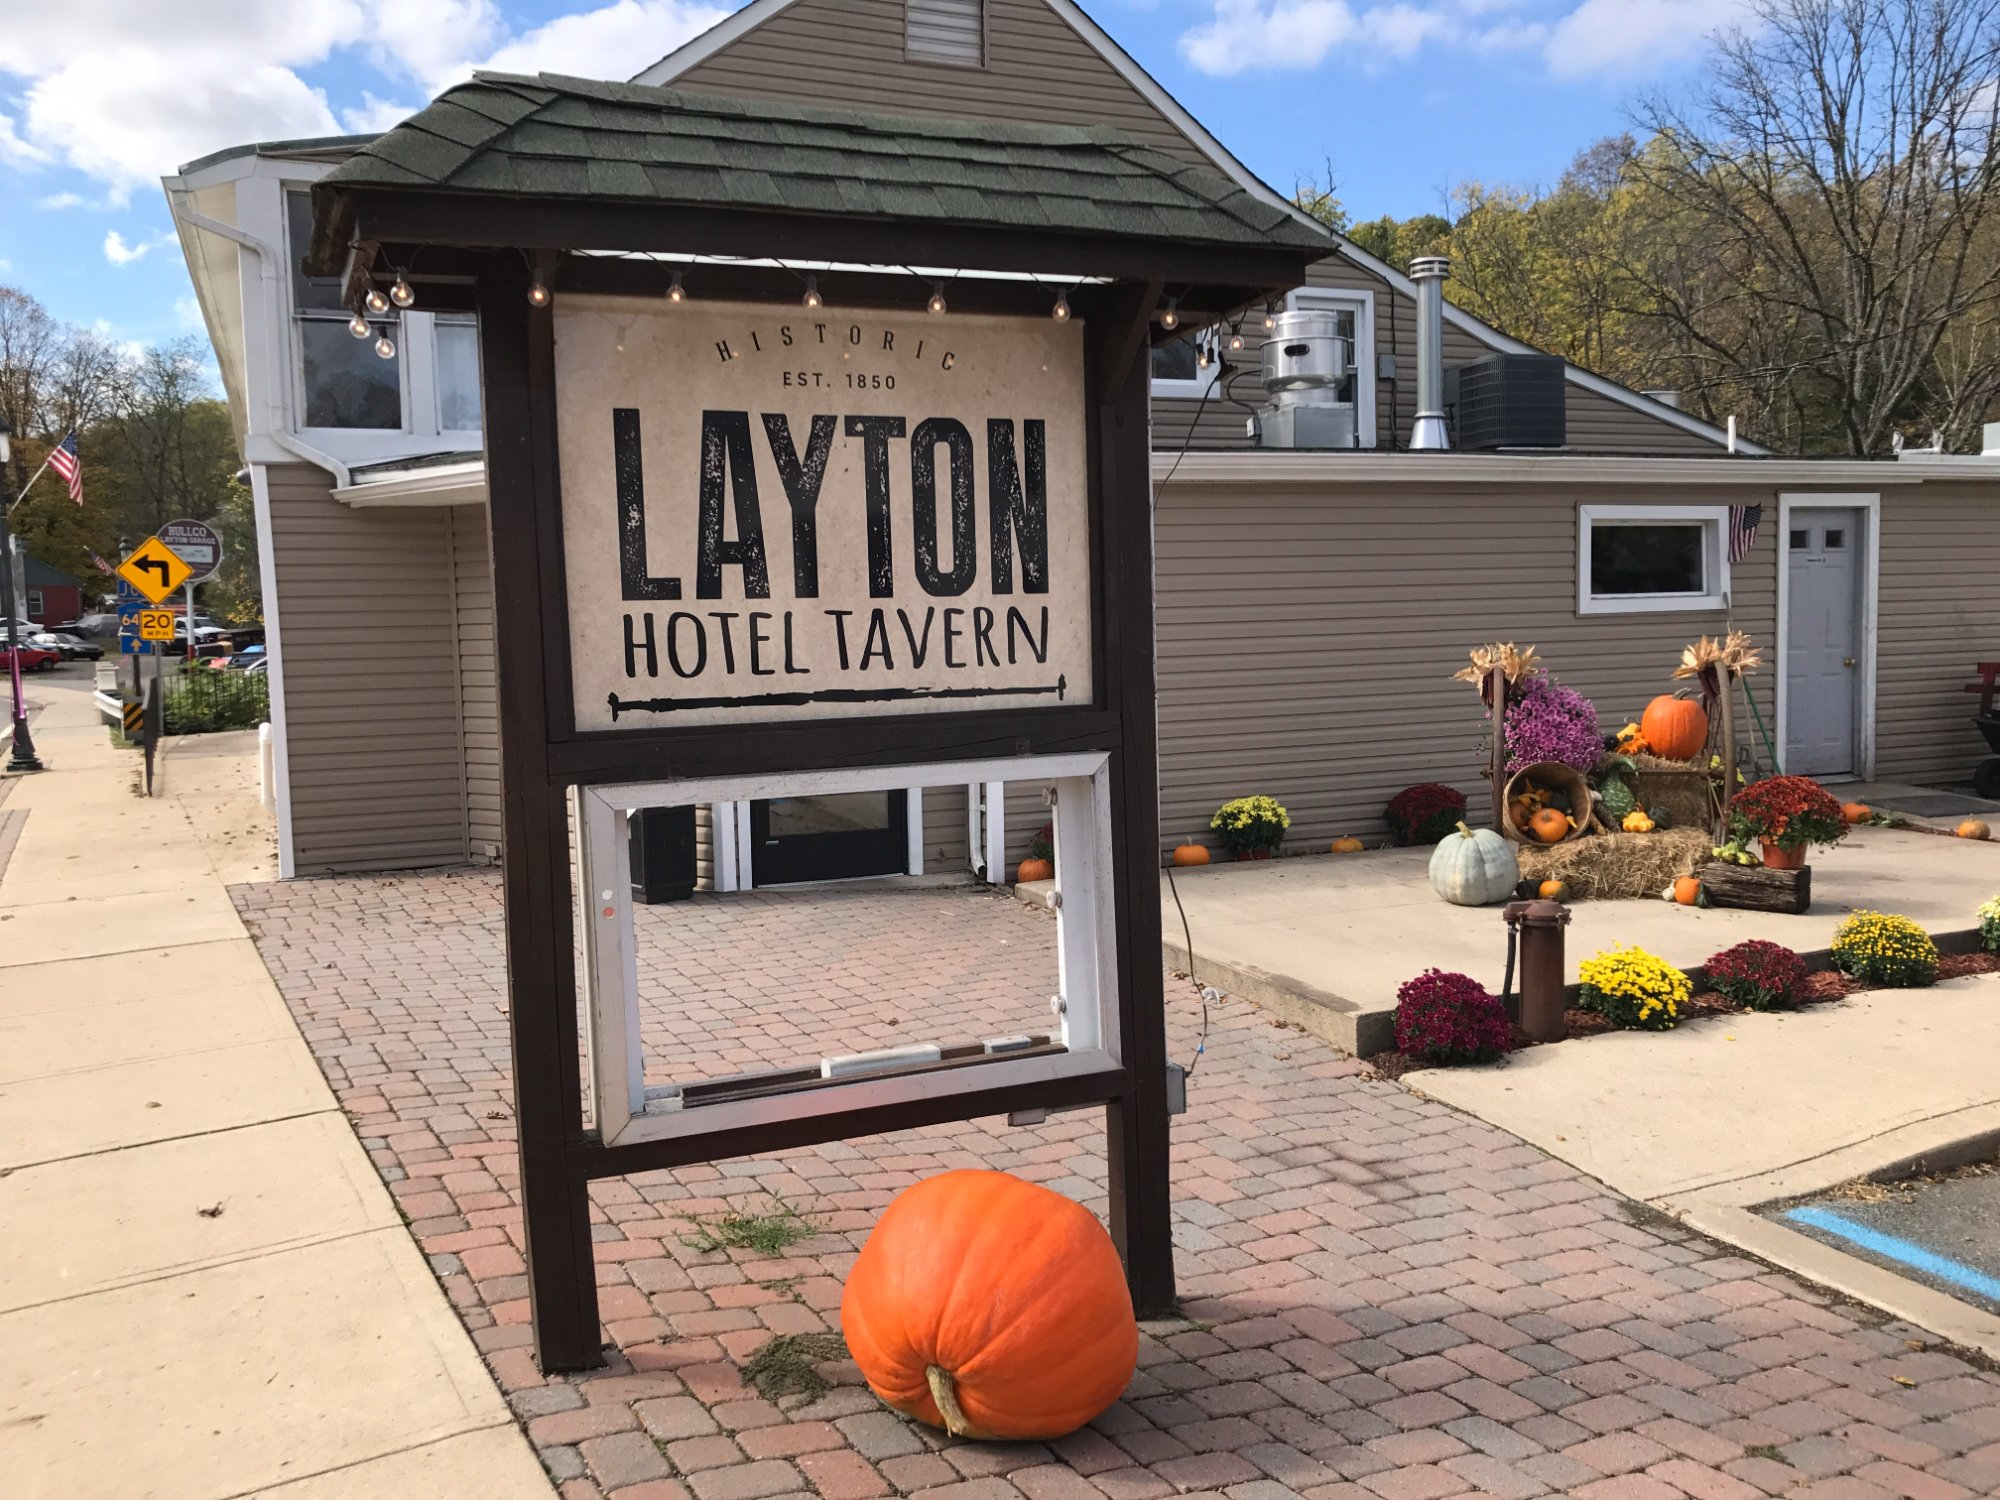 New jersey sussex county layton - All Photos 3